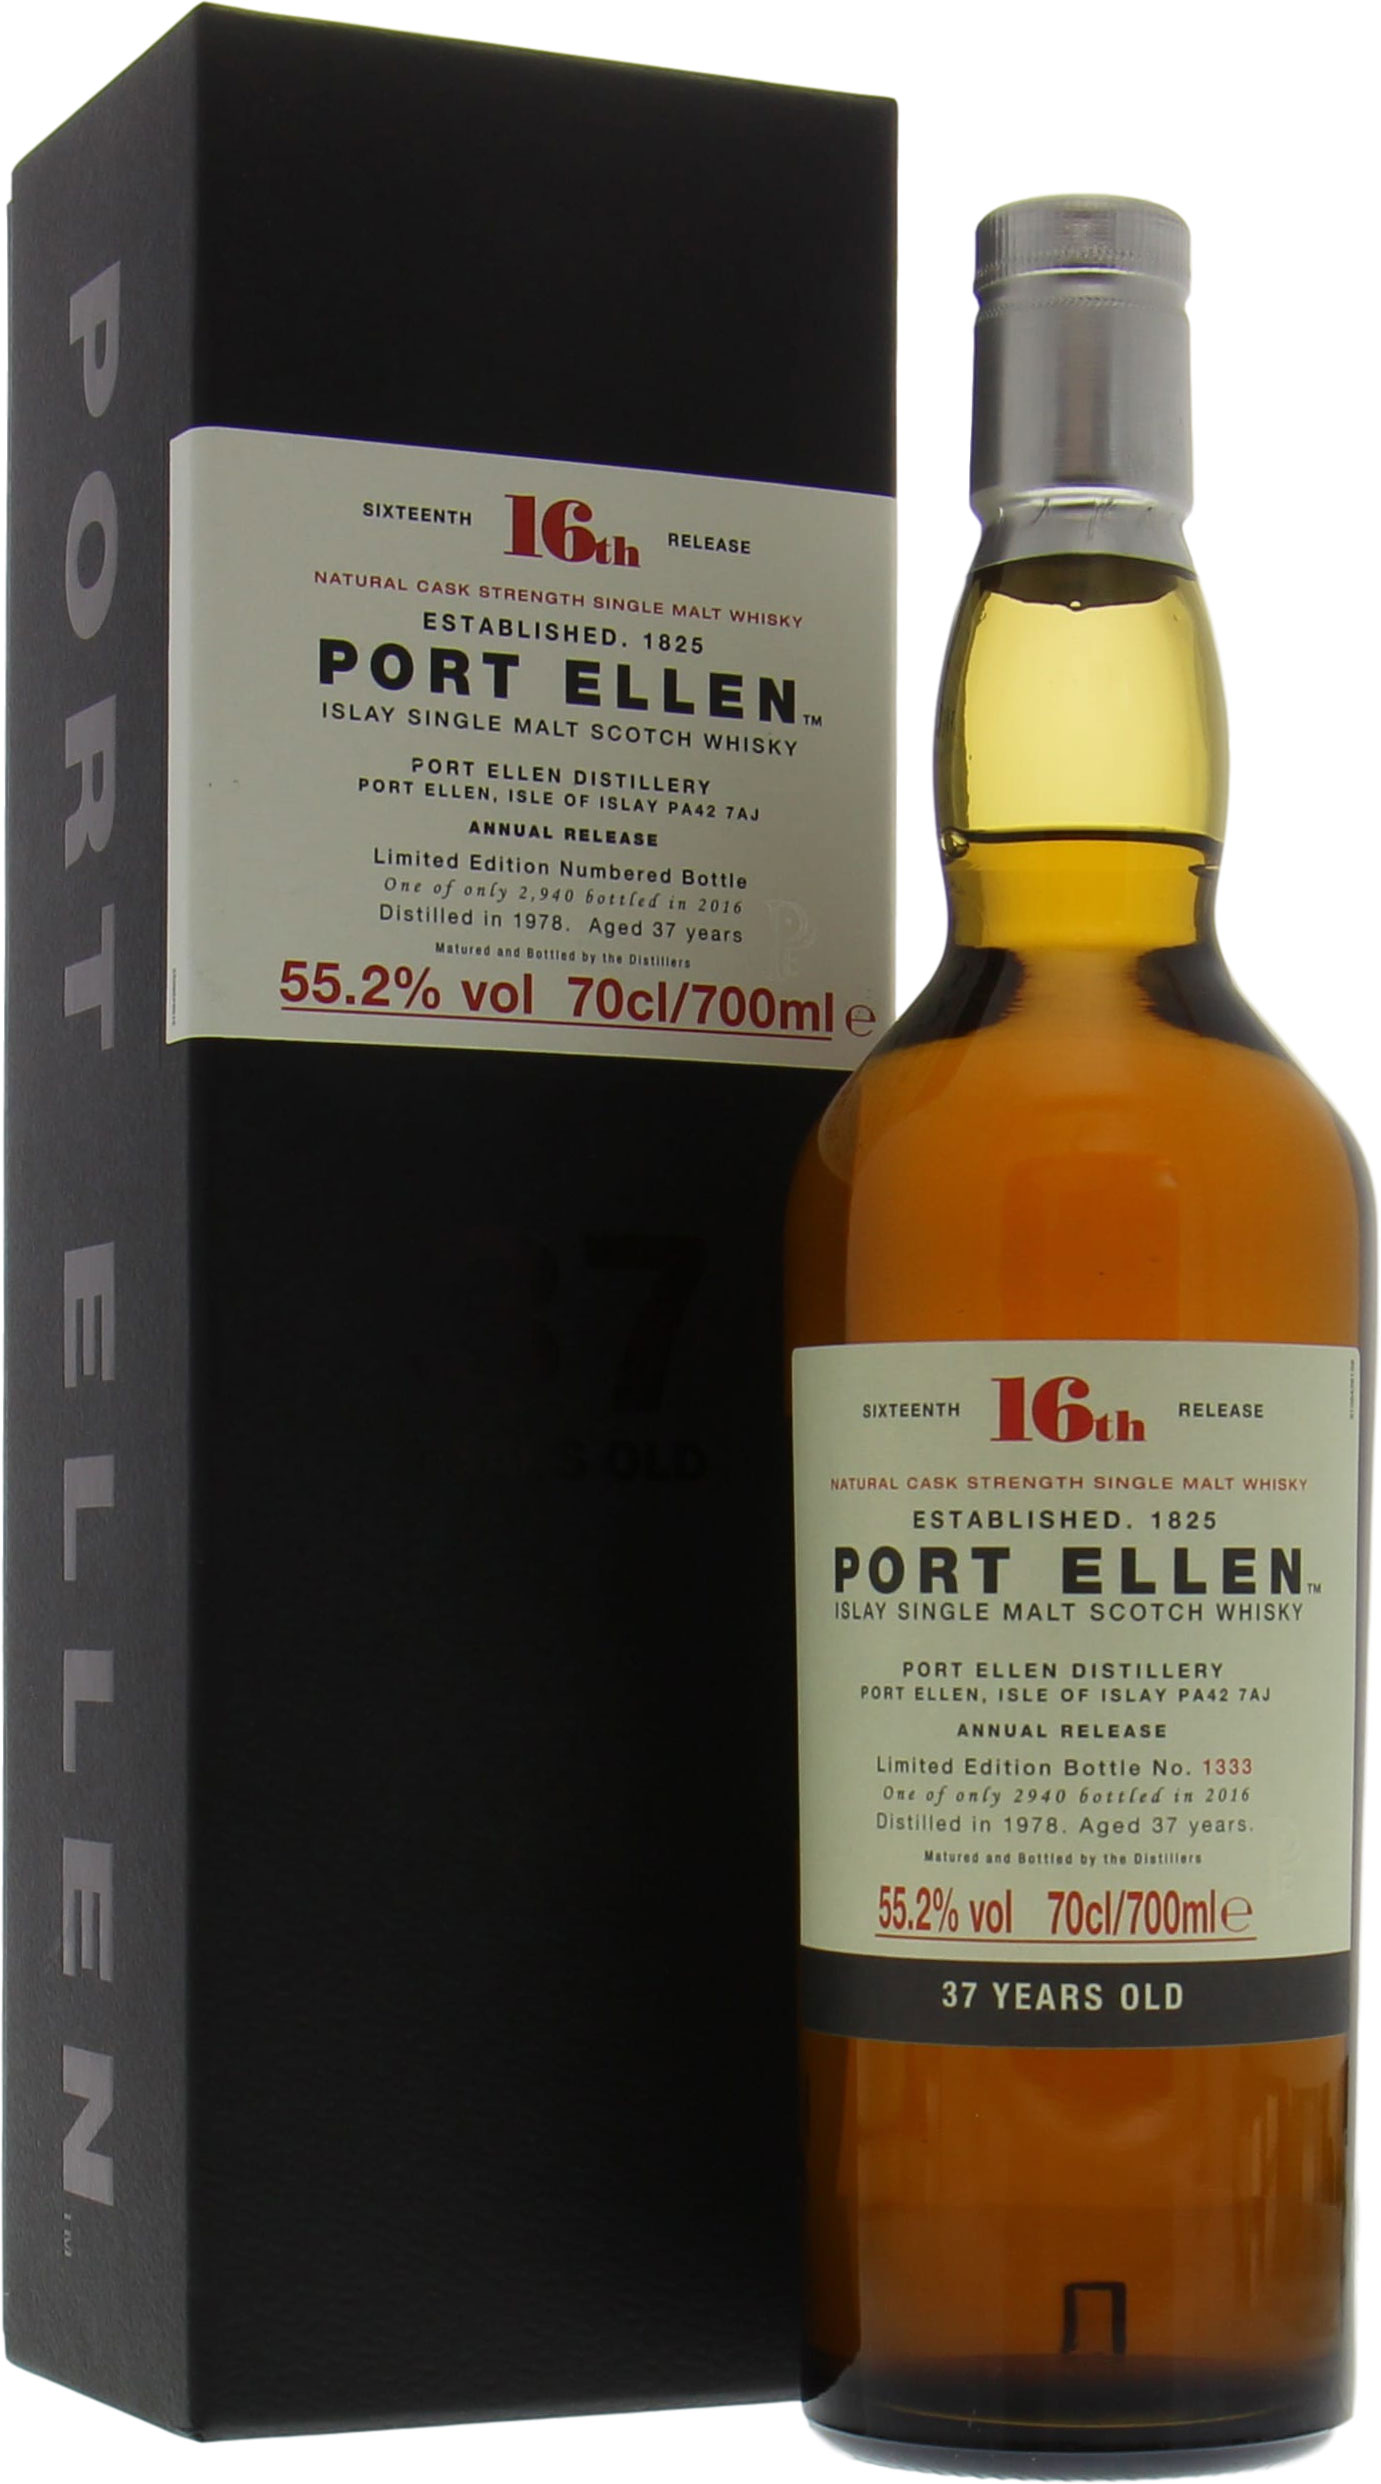 Port Ellen - 16th Annual Release 37 Years Old 55.2% NV